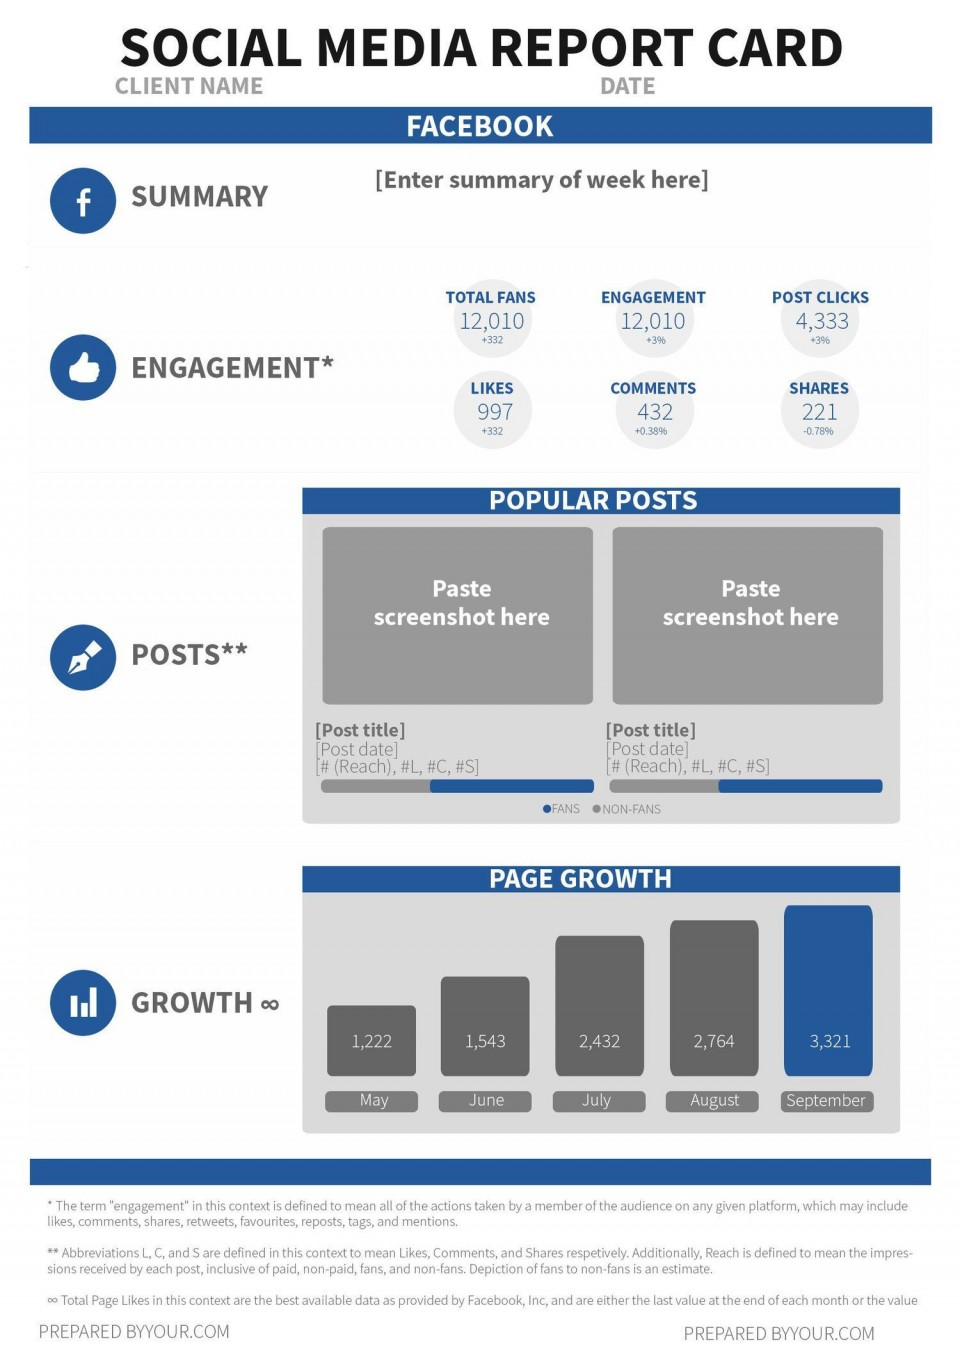 001 Fearsome Social Media Report Template Photo  Powerpoint Free Download960